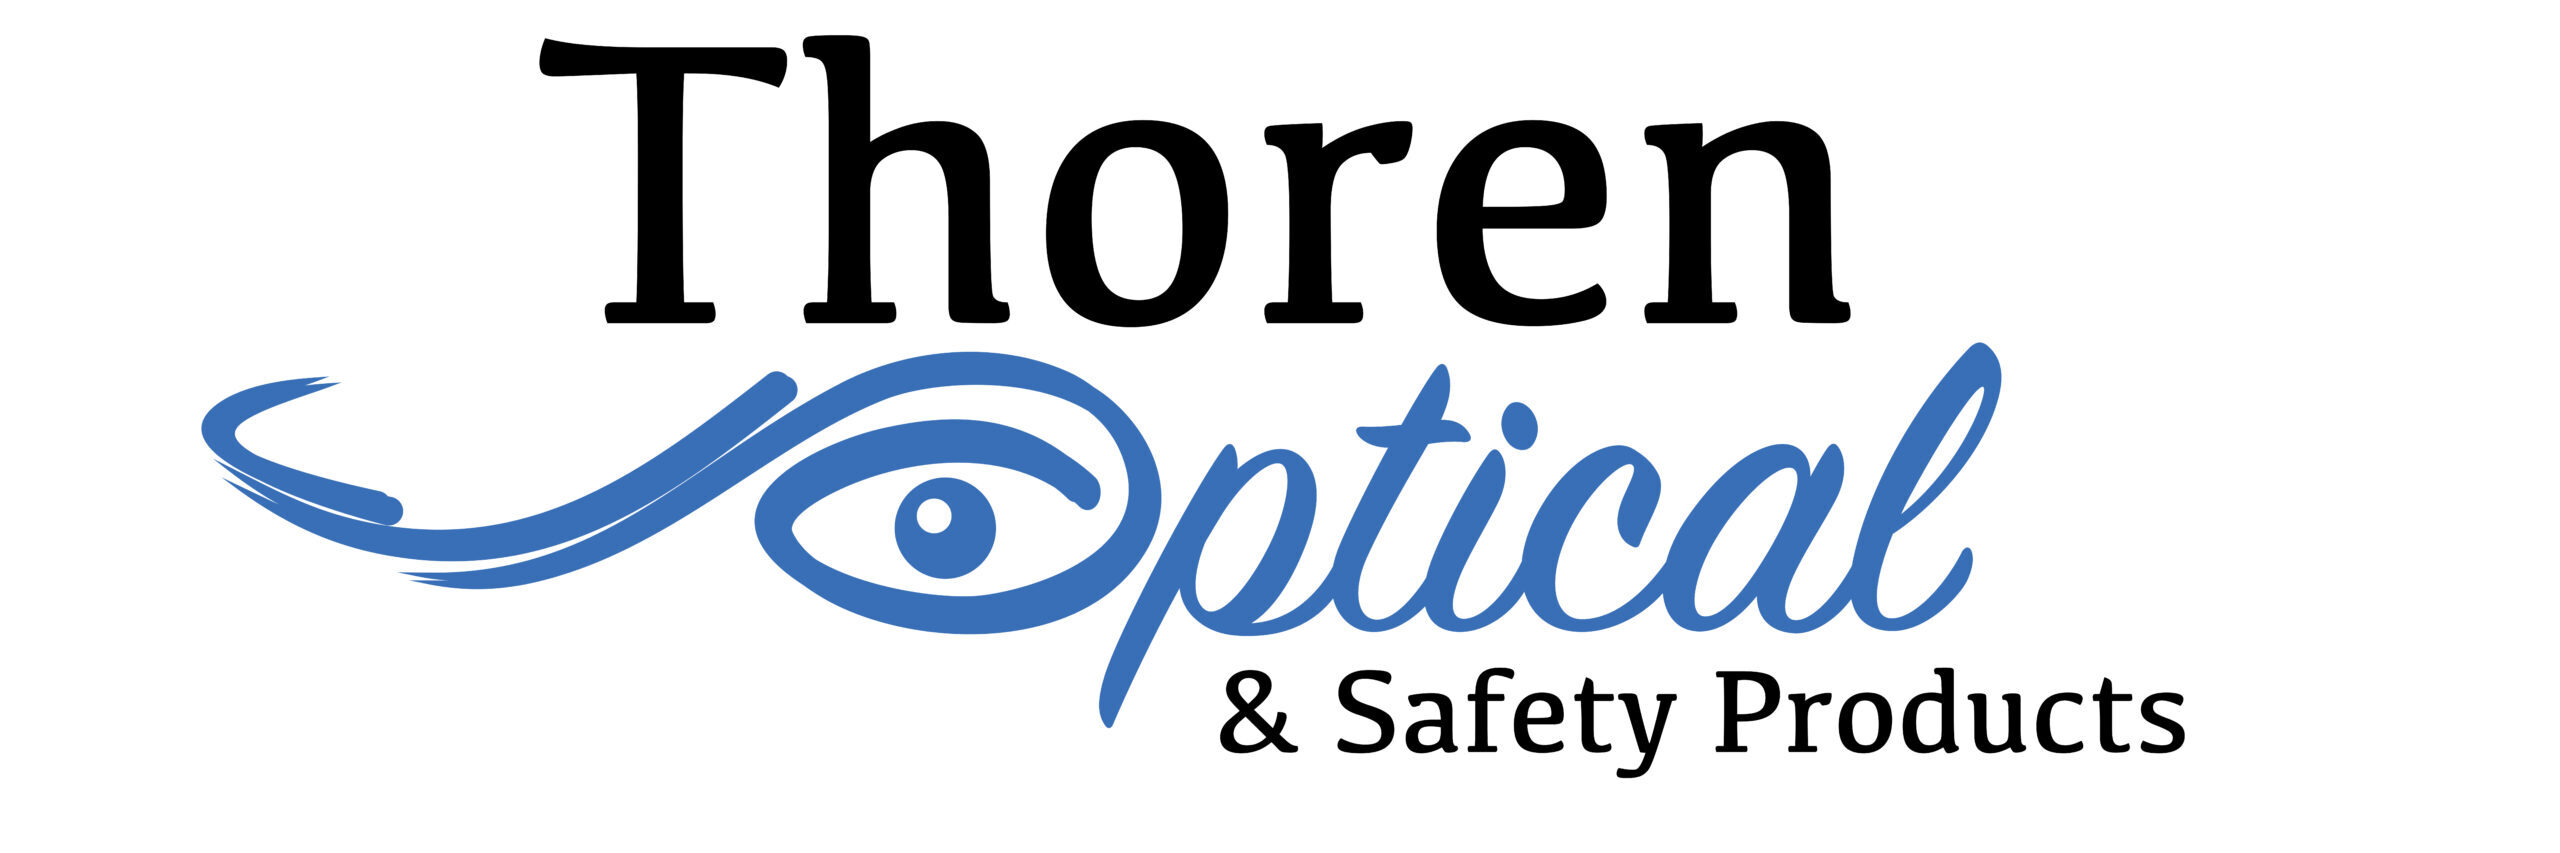 Thoren Optical & Safety Products